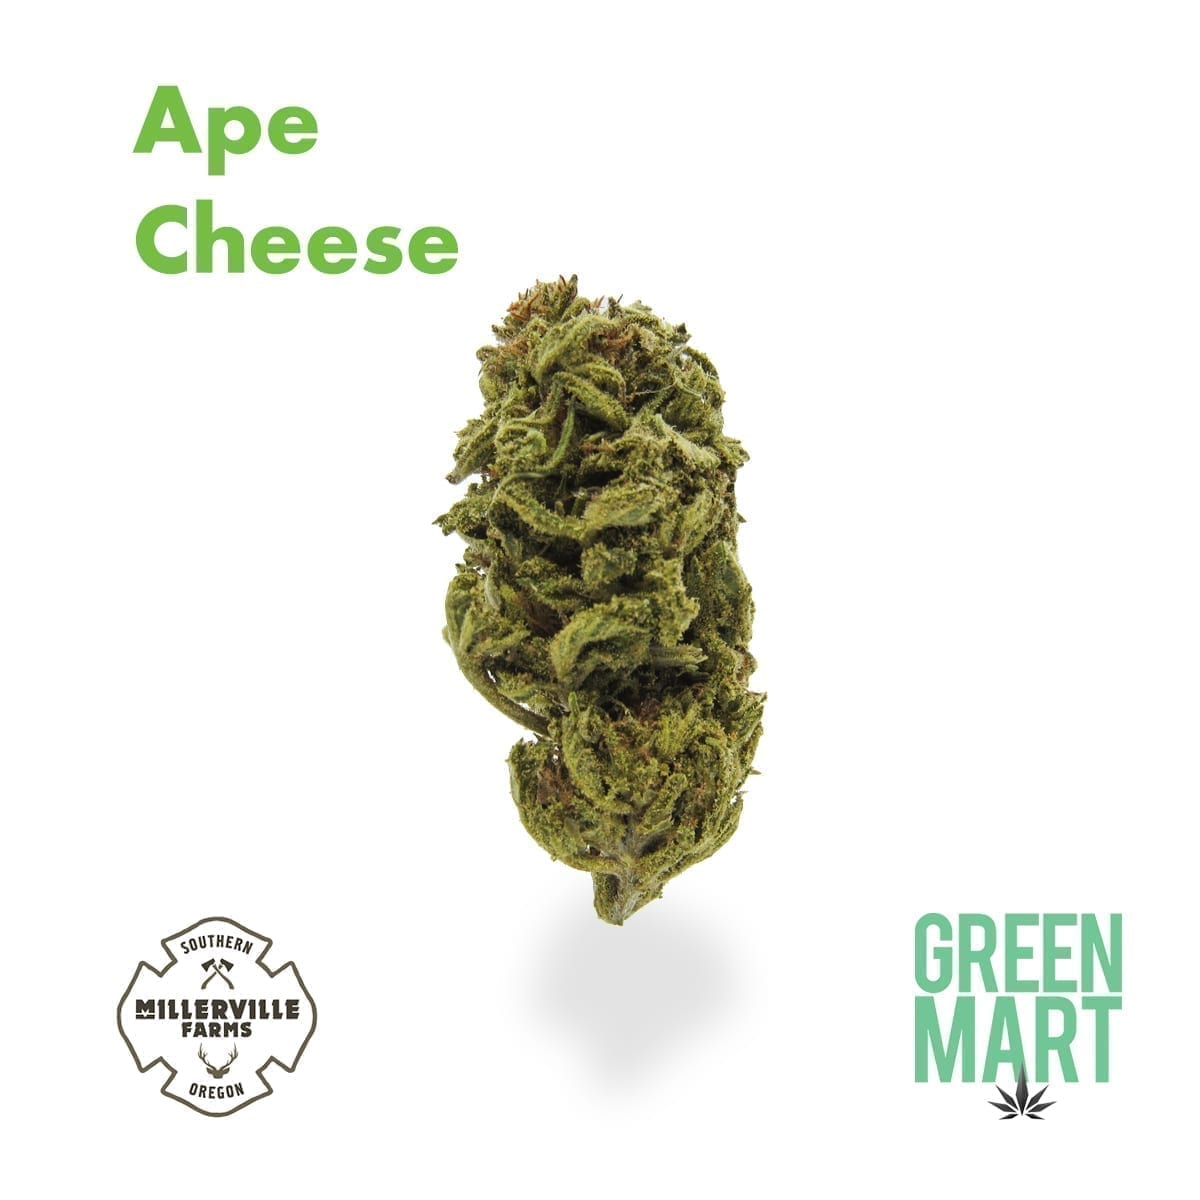 Ape Cheese